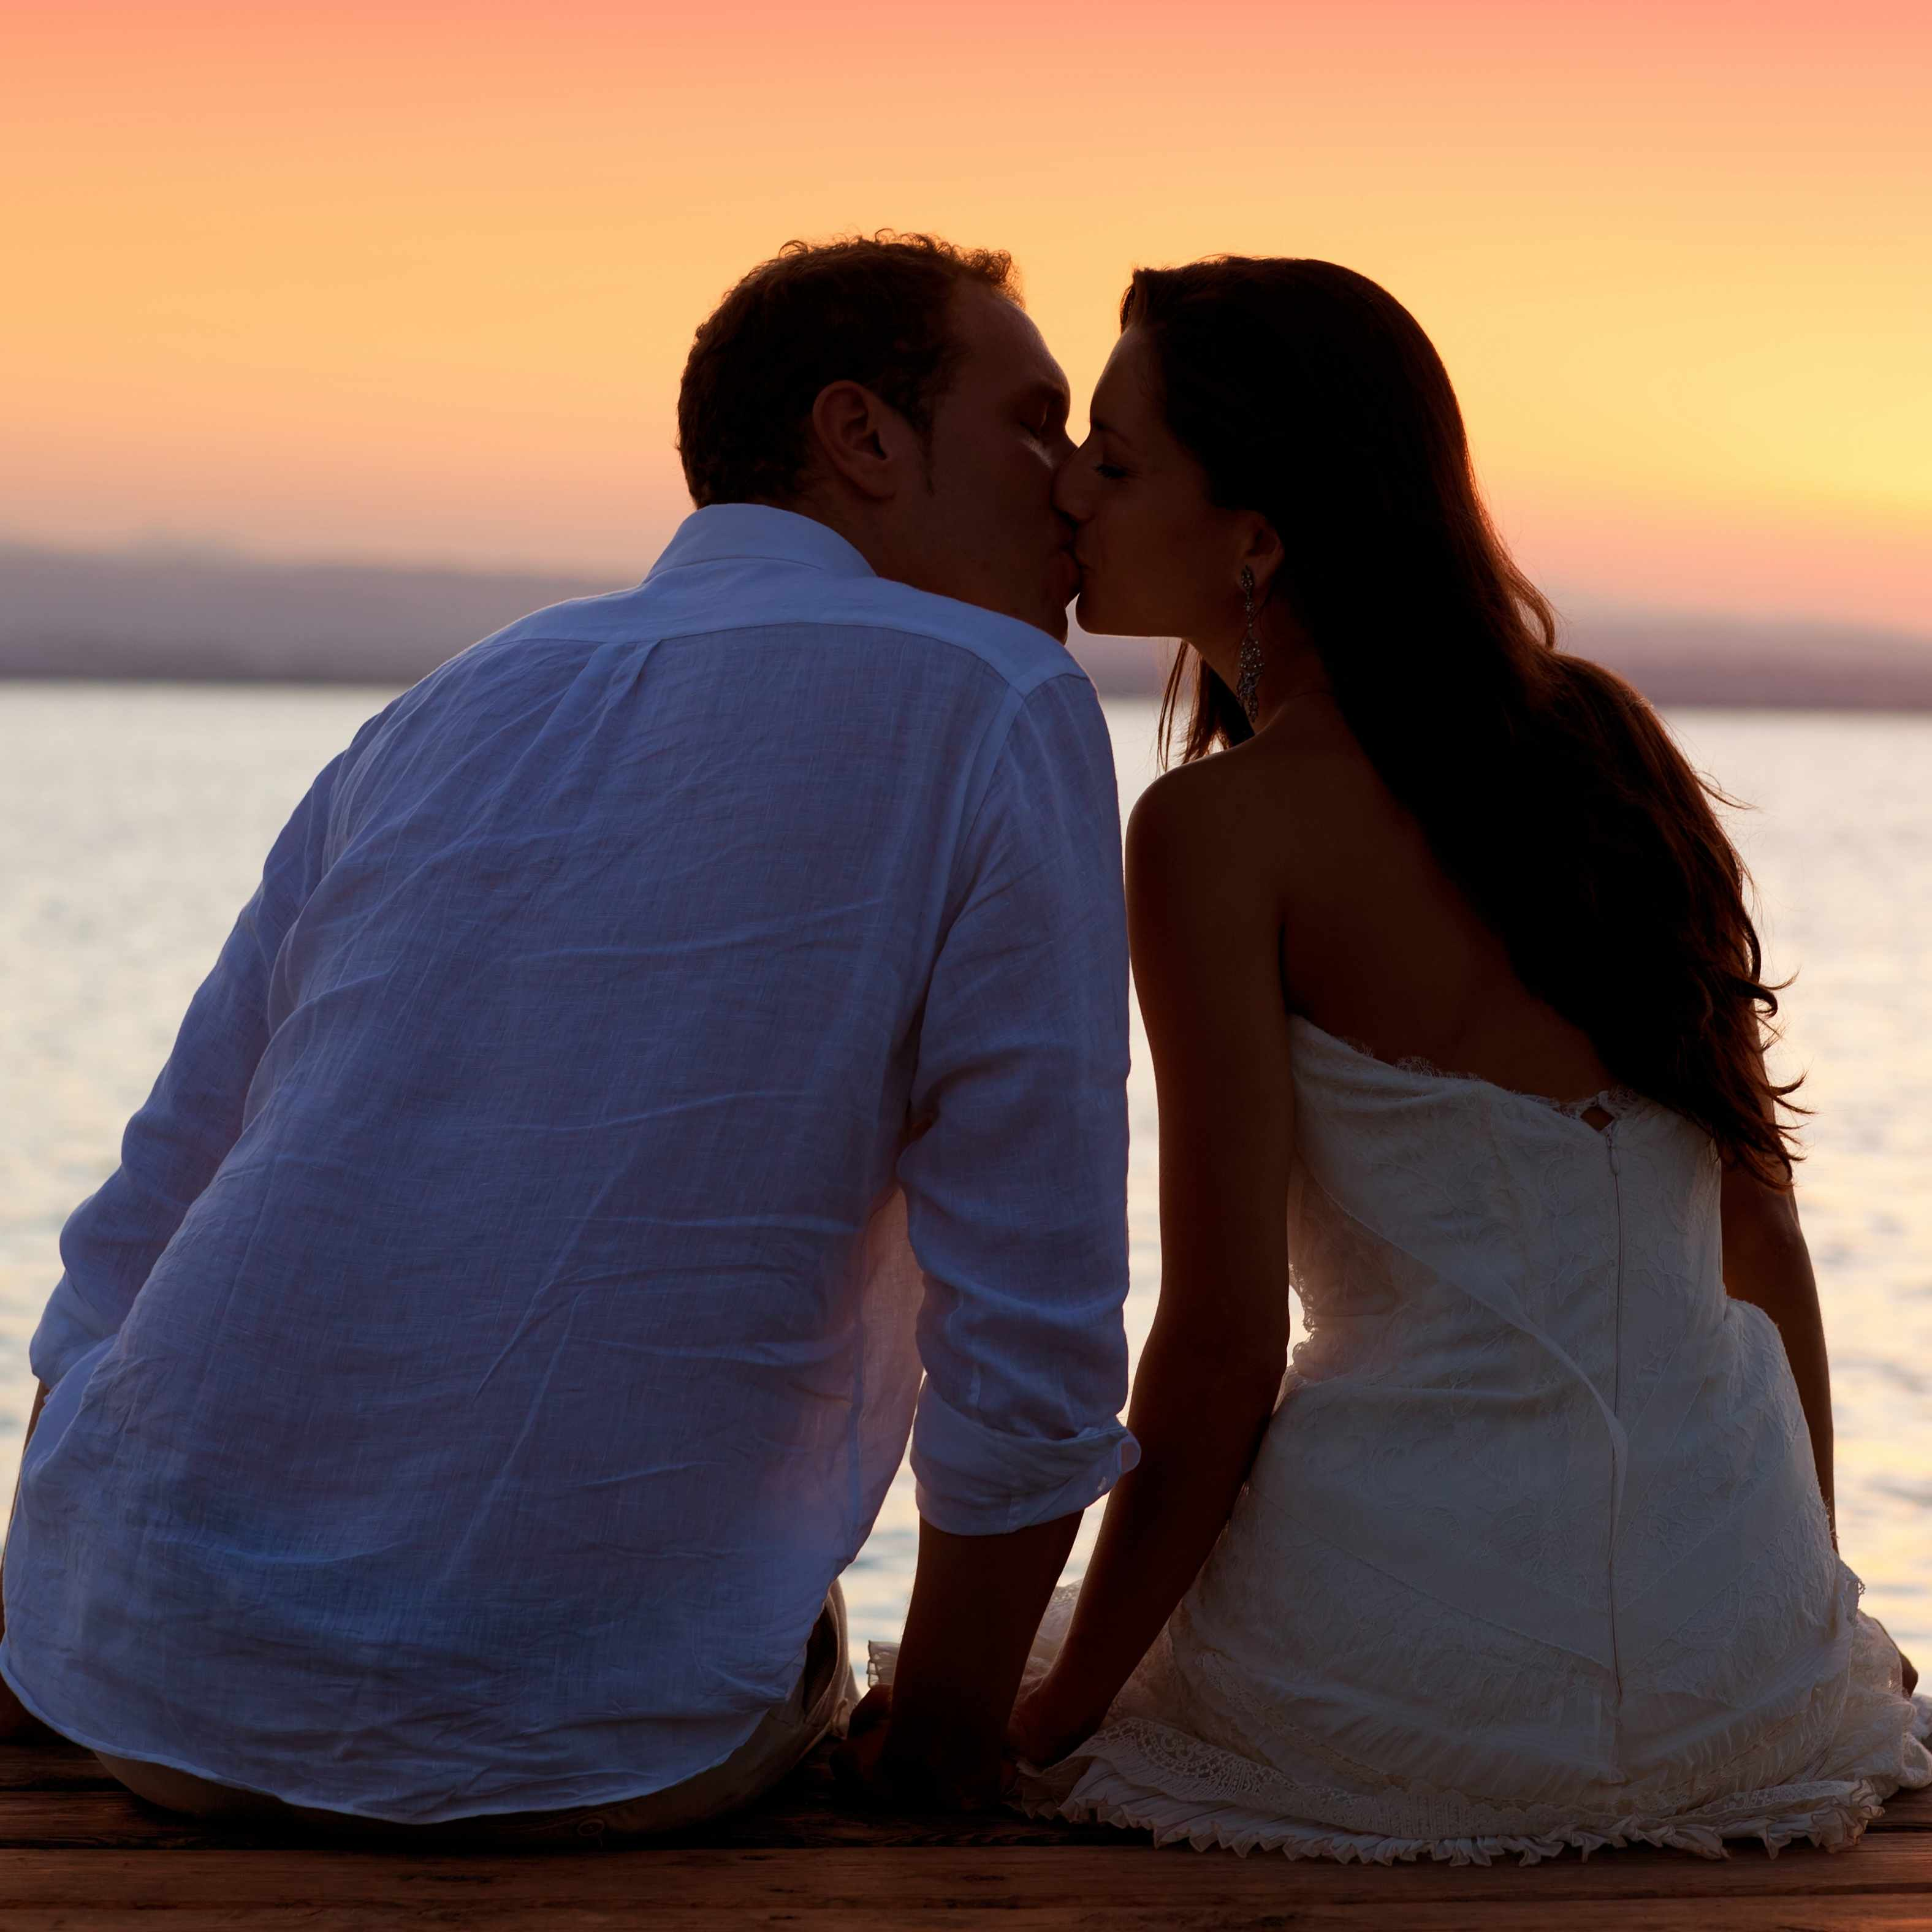 a young man and woman, couple sitting on boat dock kissing with sunset in background